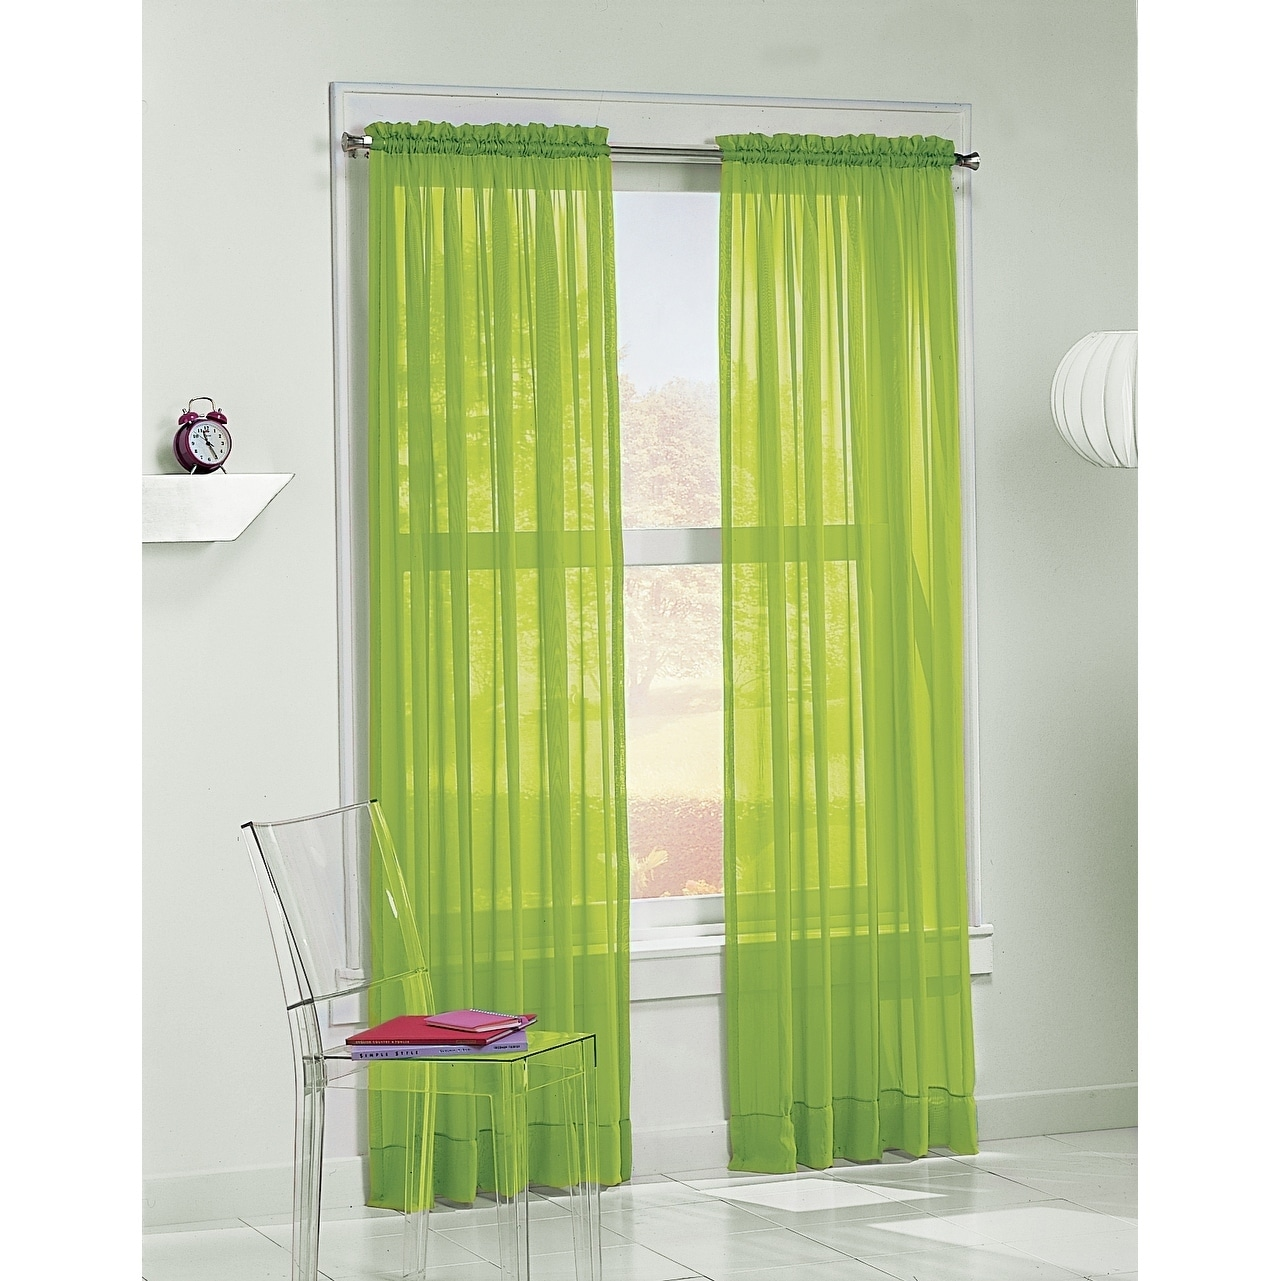 No. 918 Calypso 84-inch Curtain Panel (Lime), Green, Size...